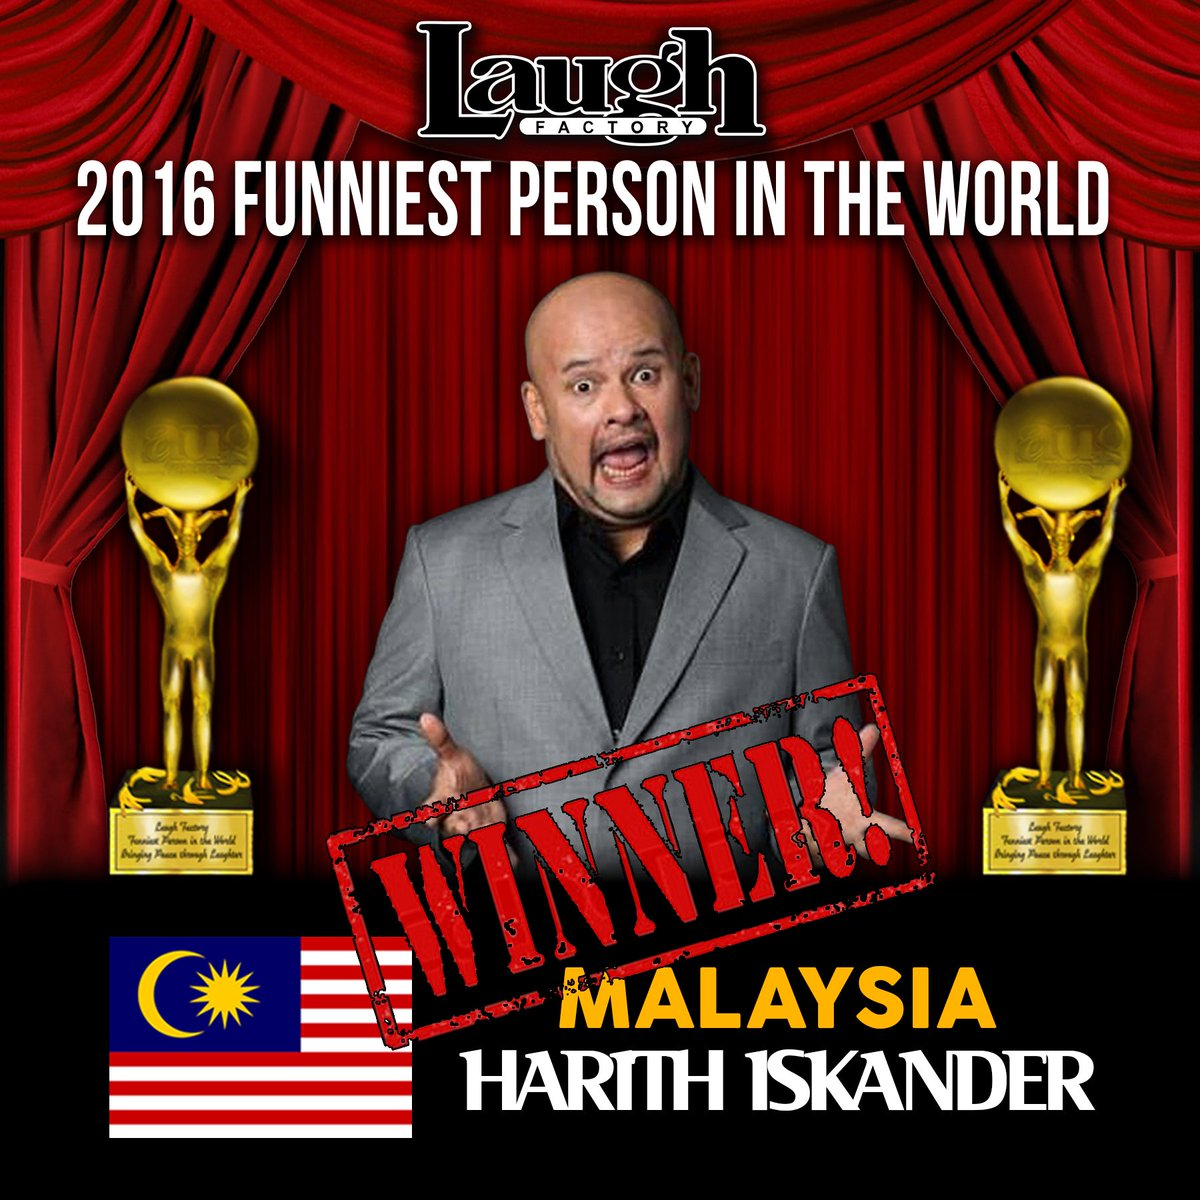 Congratulations @HarithIskander- #LaughFactory's Funniest Person in the World for 2016! https://t.co/732t2CZnhX